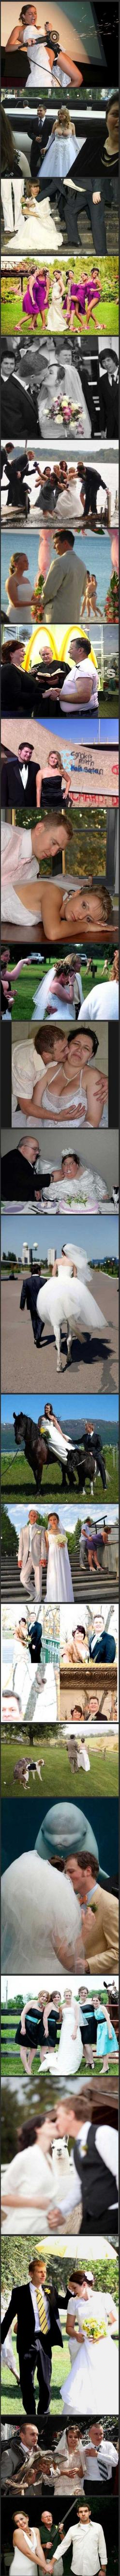 Mostly unfortunate wedding photos.. So so bad: Awkward Wedding, Giggle, Wedding Photos, Funny Wedding, Wedding Pictures, So Funny